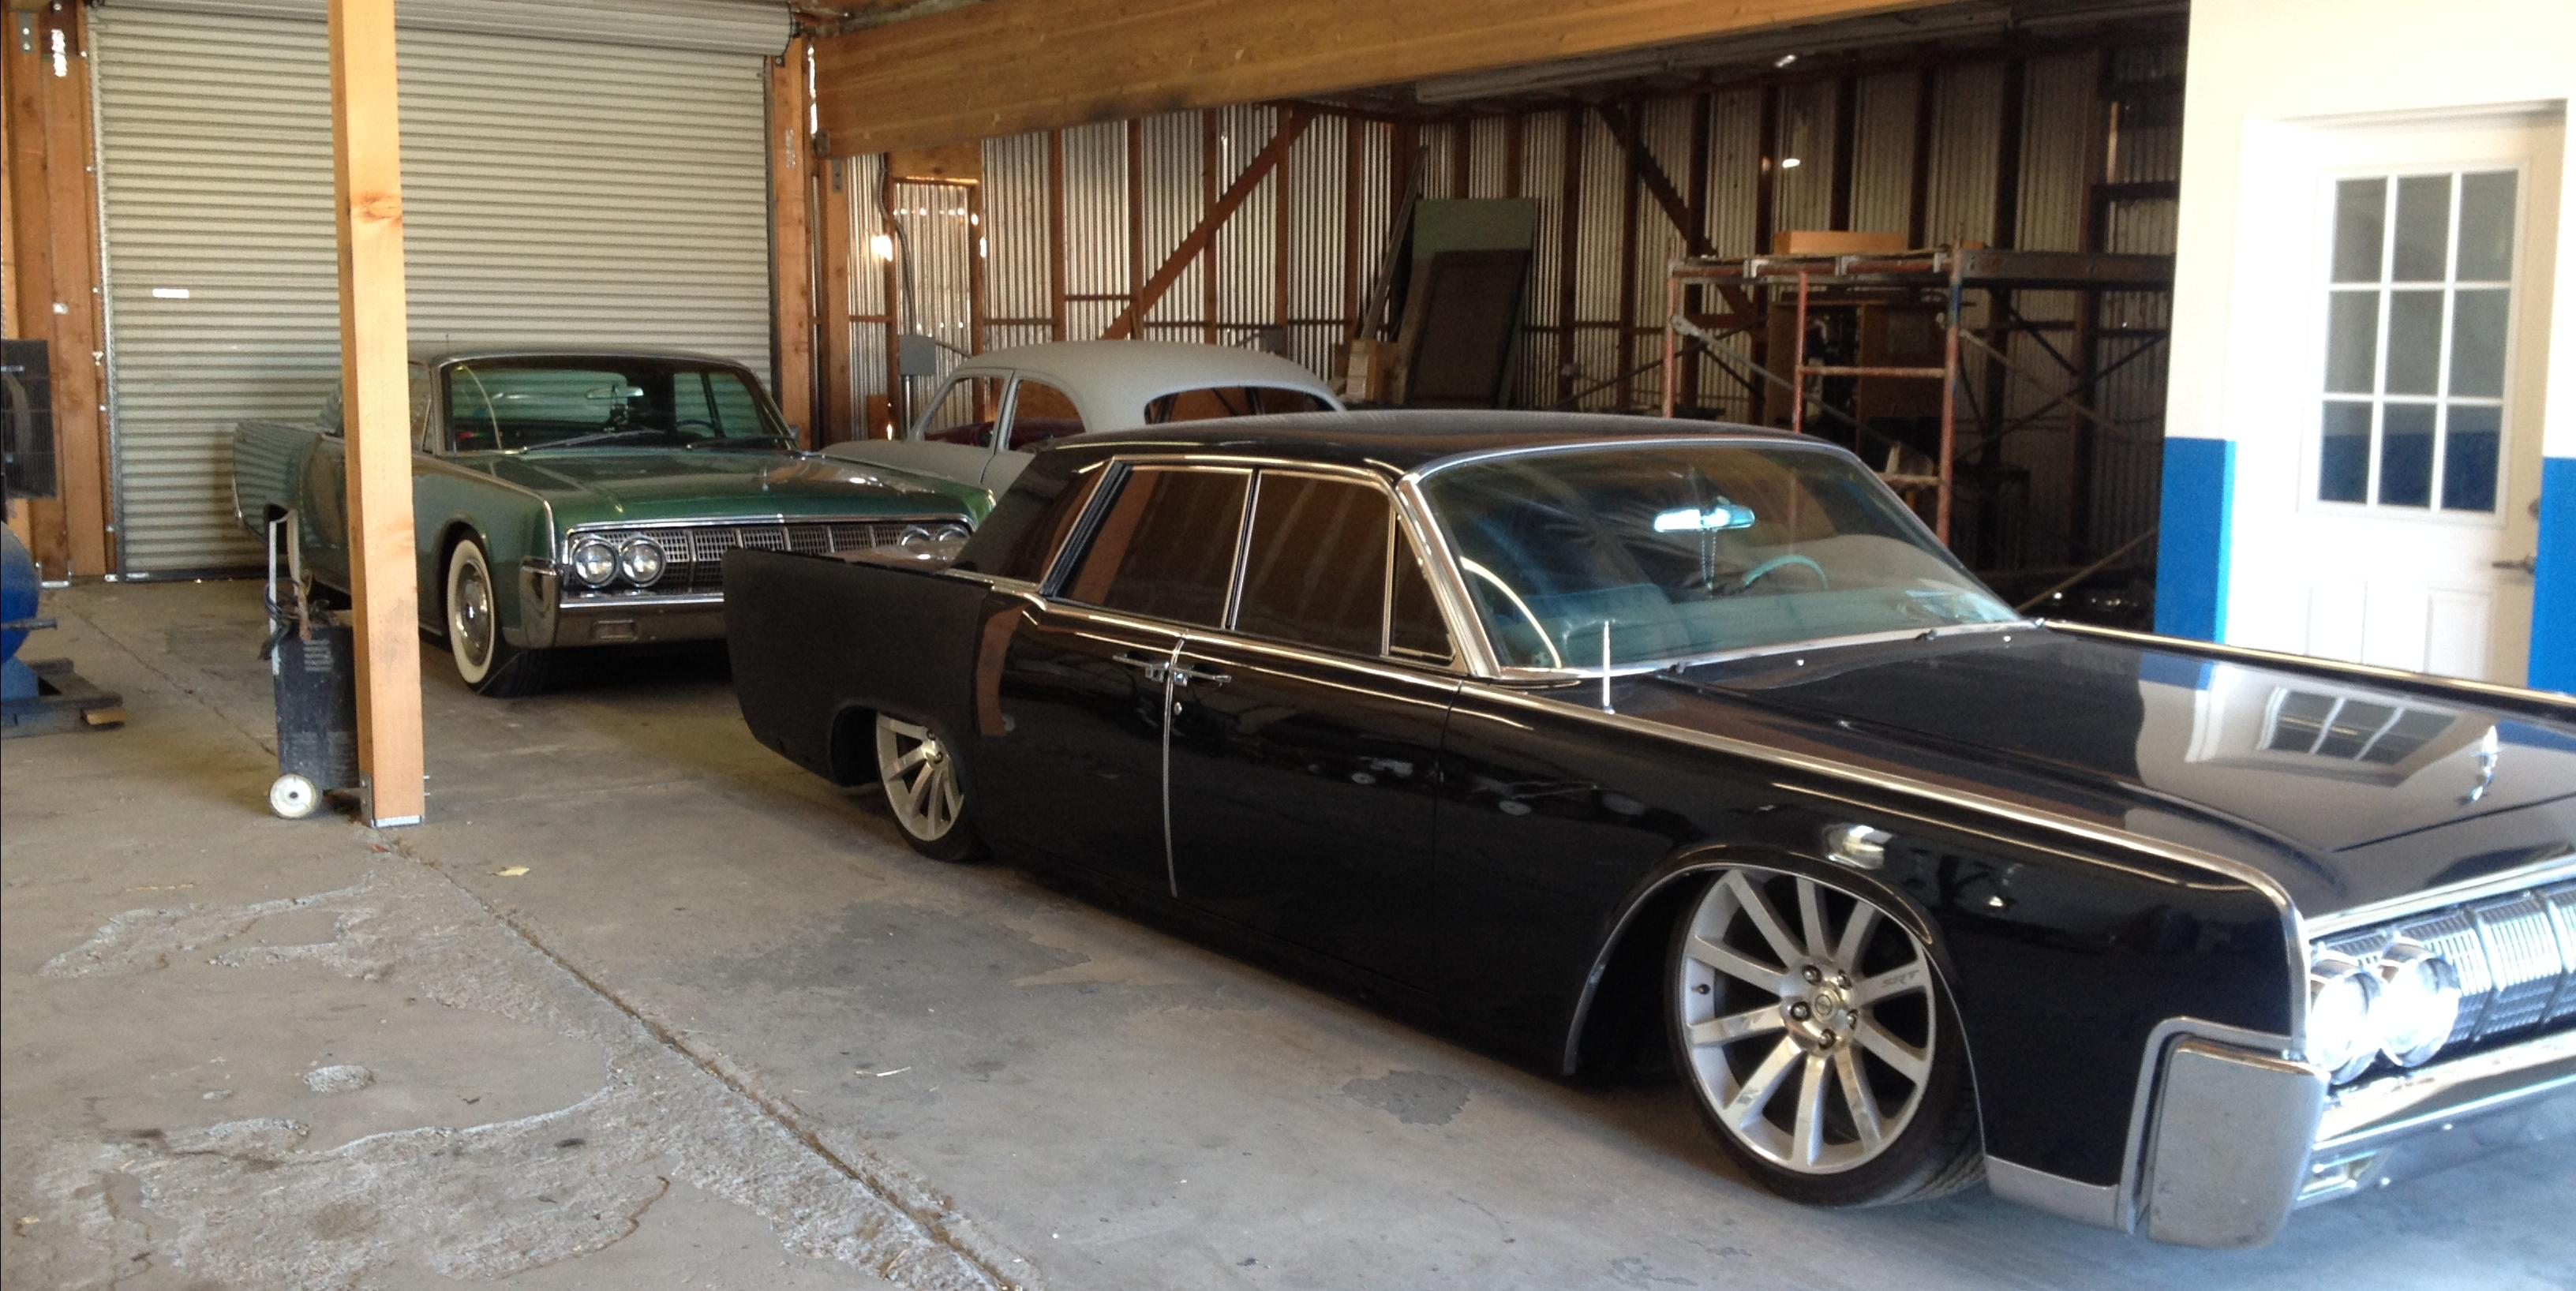 REKFIXR's 1964 Lincoln Continental